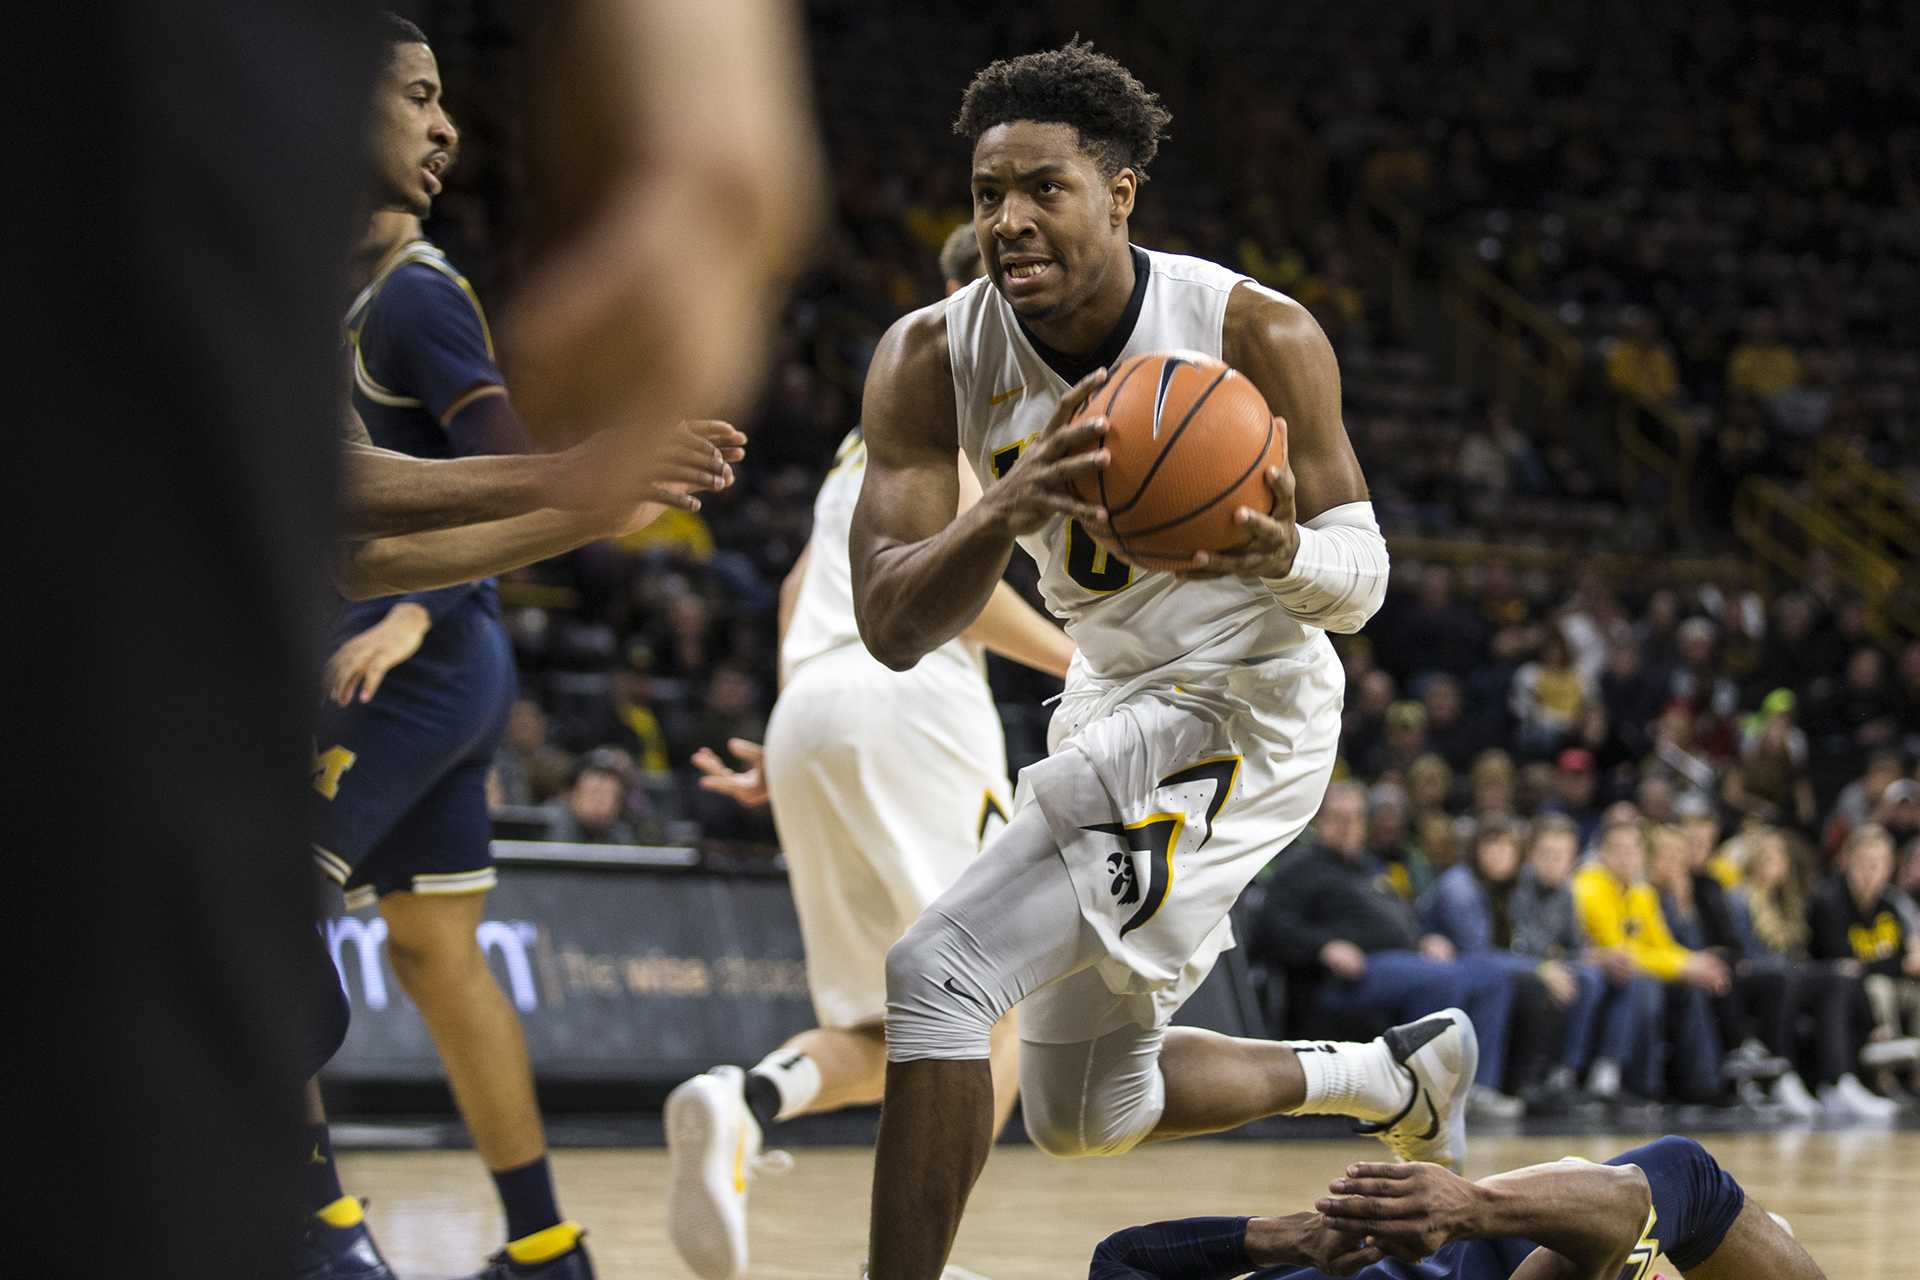 Iowa forward Ahmad Wagner (0) drives the ball to the hoop over Michigan's M-A Abdur-Rahkman (12) during the NCAA basketball game between Iowa and Michigan at Carver-Hawkeye Arena on Tuesday, Jan. 2, 2017. The Hawkeyes fell to the Wolverines 75-68. (Ben Allan Smith/The Daily Iowan)